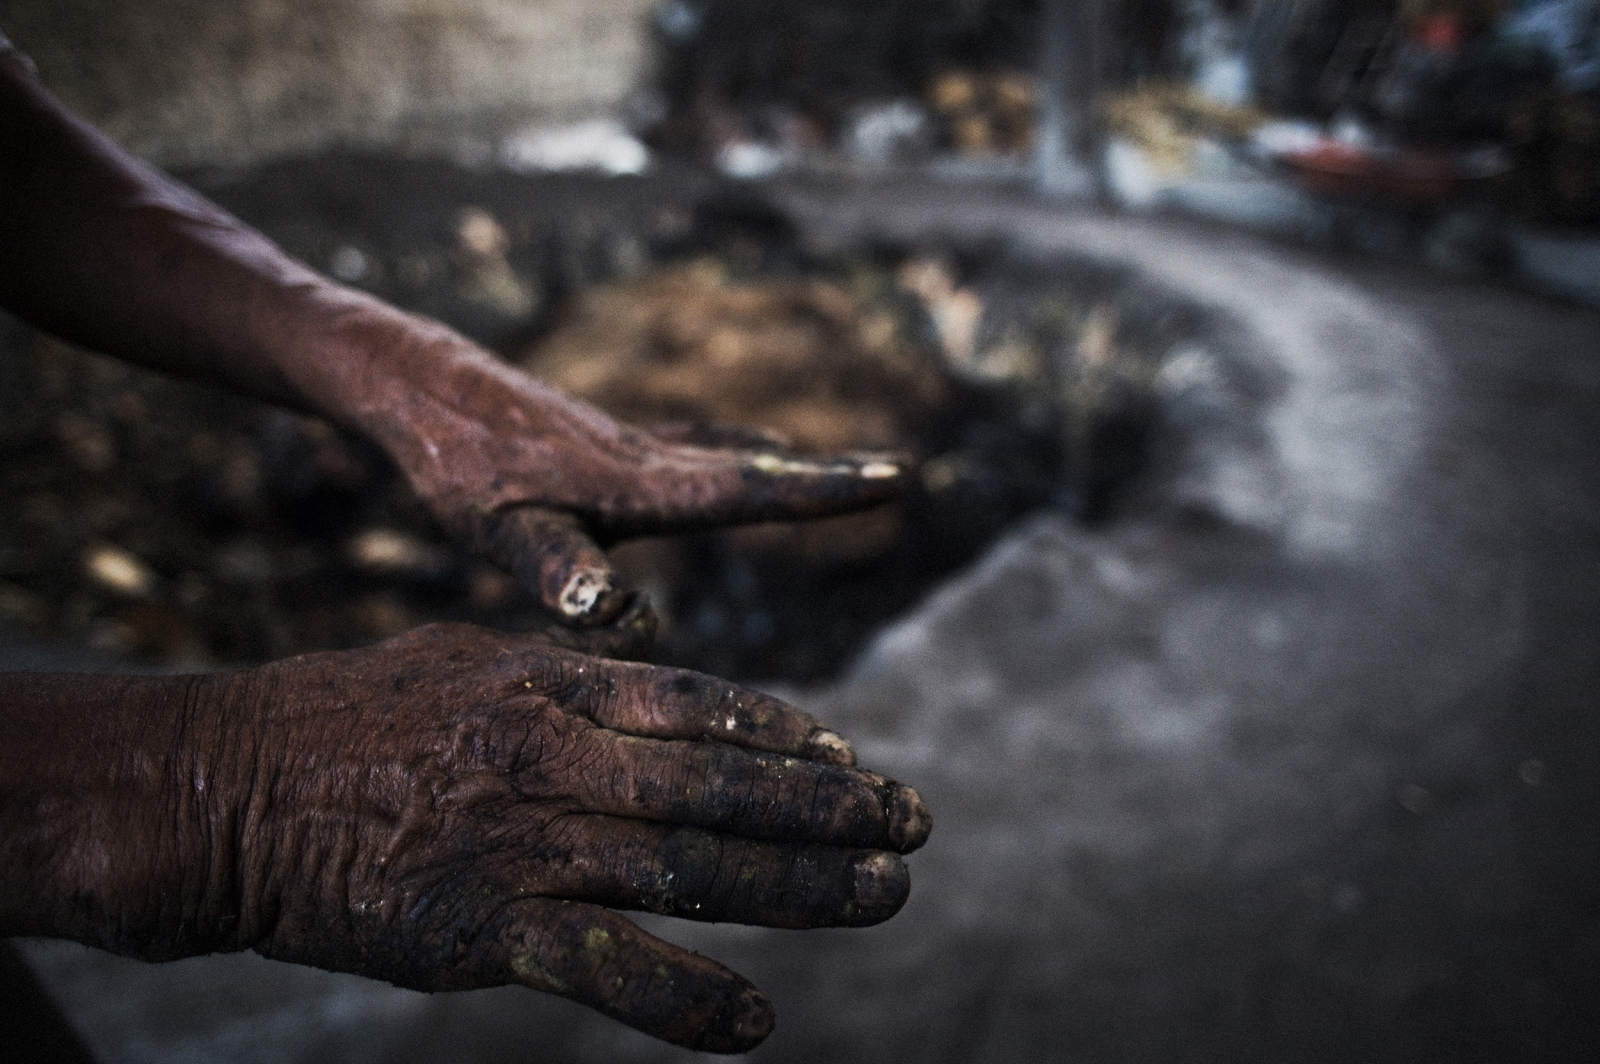 A mezcalero's hands after clearing the earth oven of cooked agave.